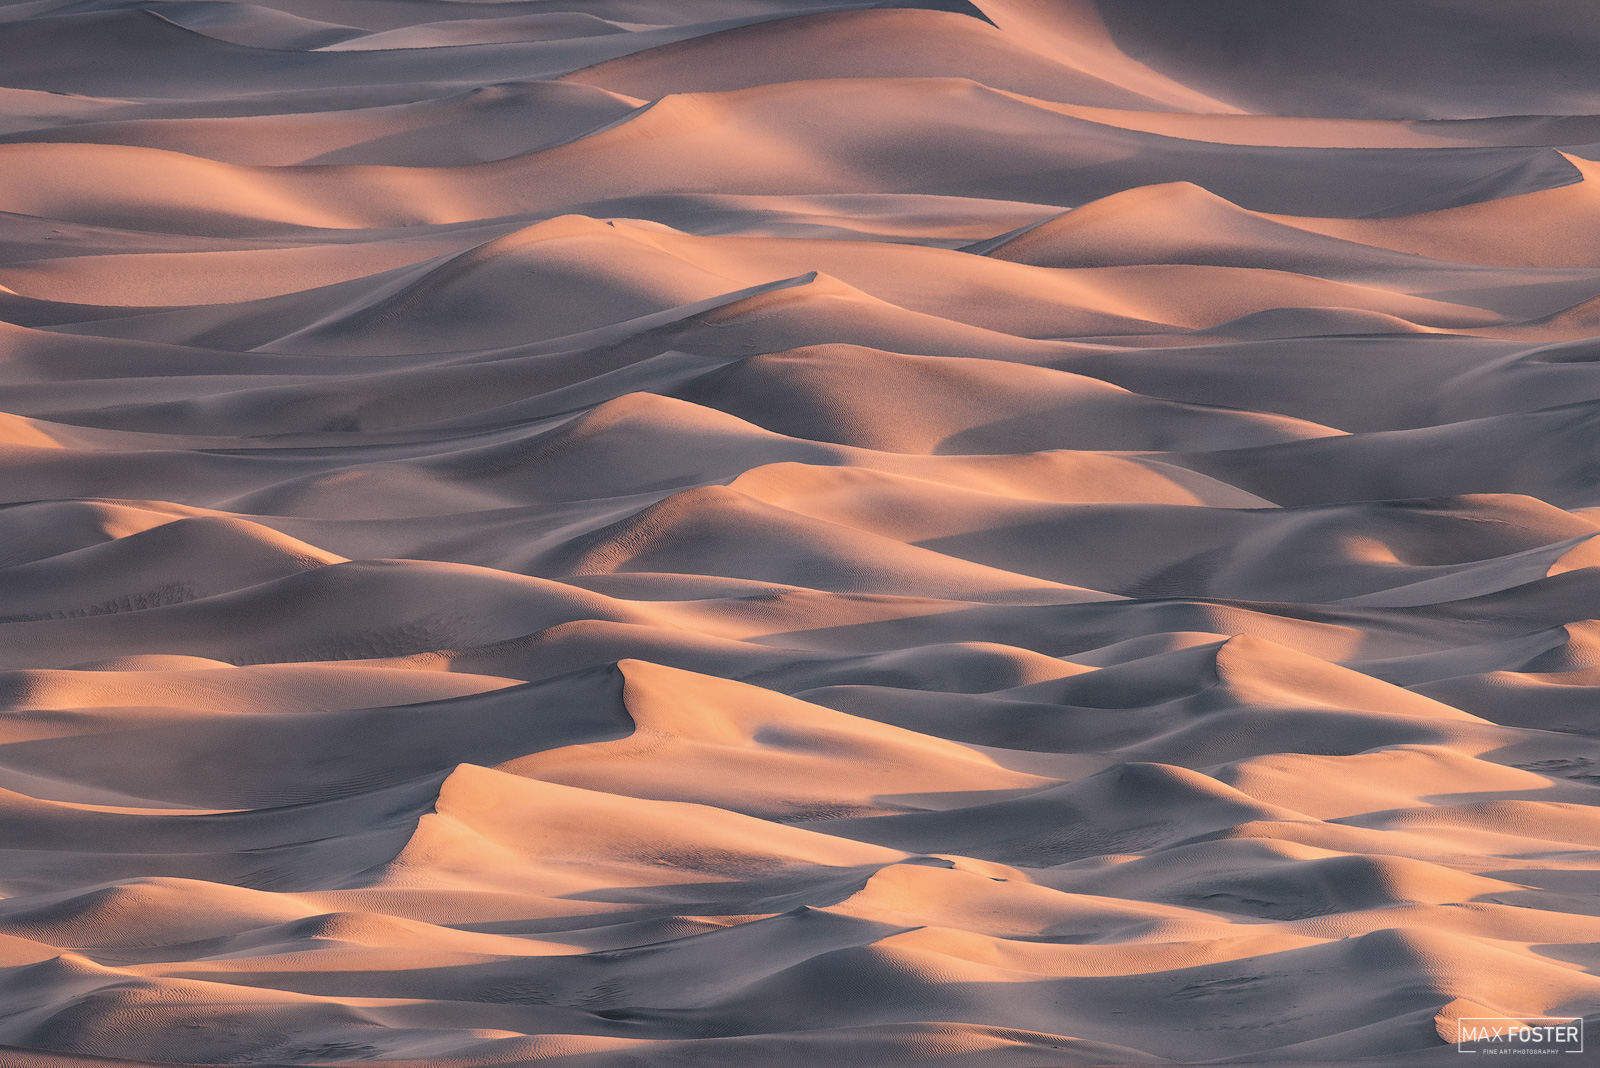 Mesquite Flat Sand Dunes, Death Valley National Park, California, Infinite, photo